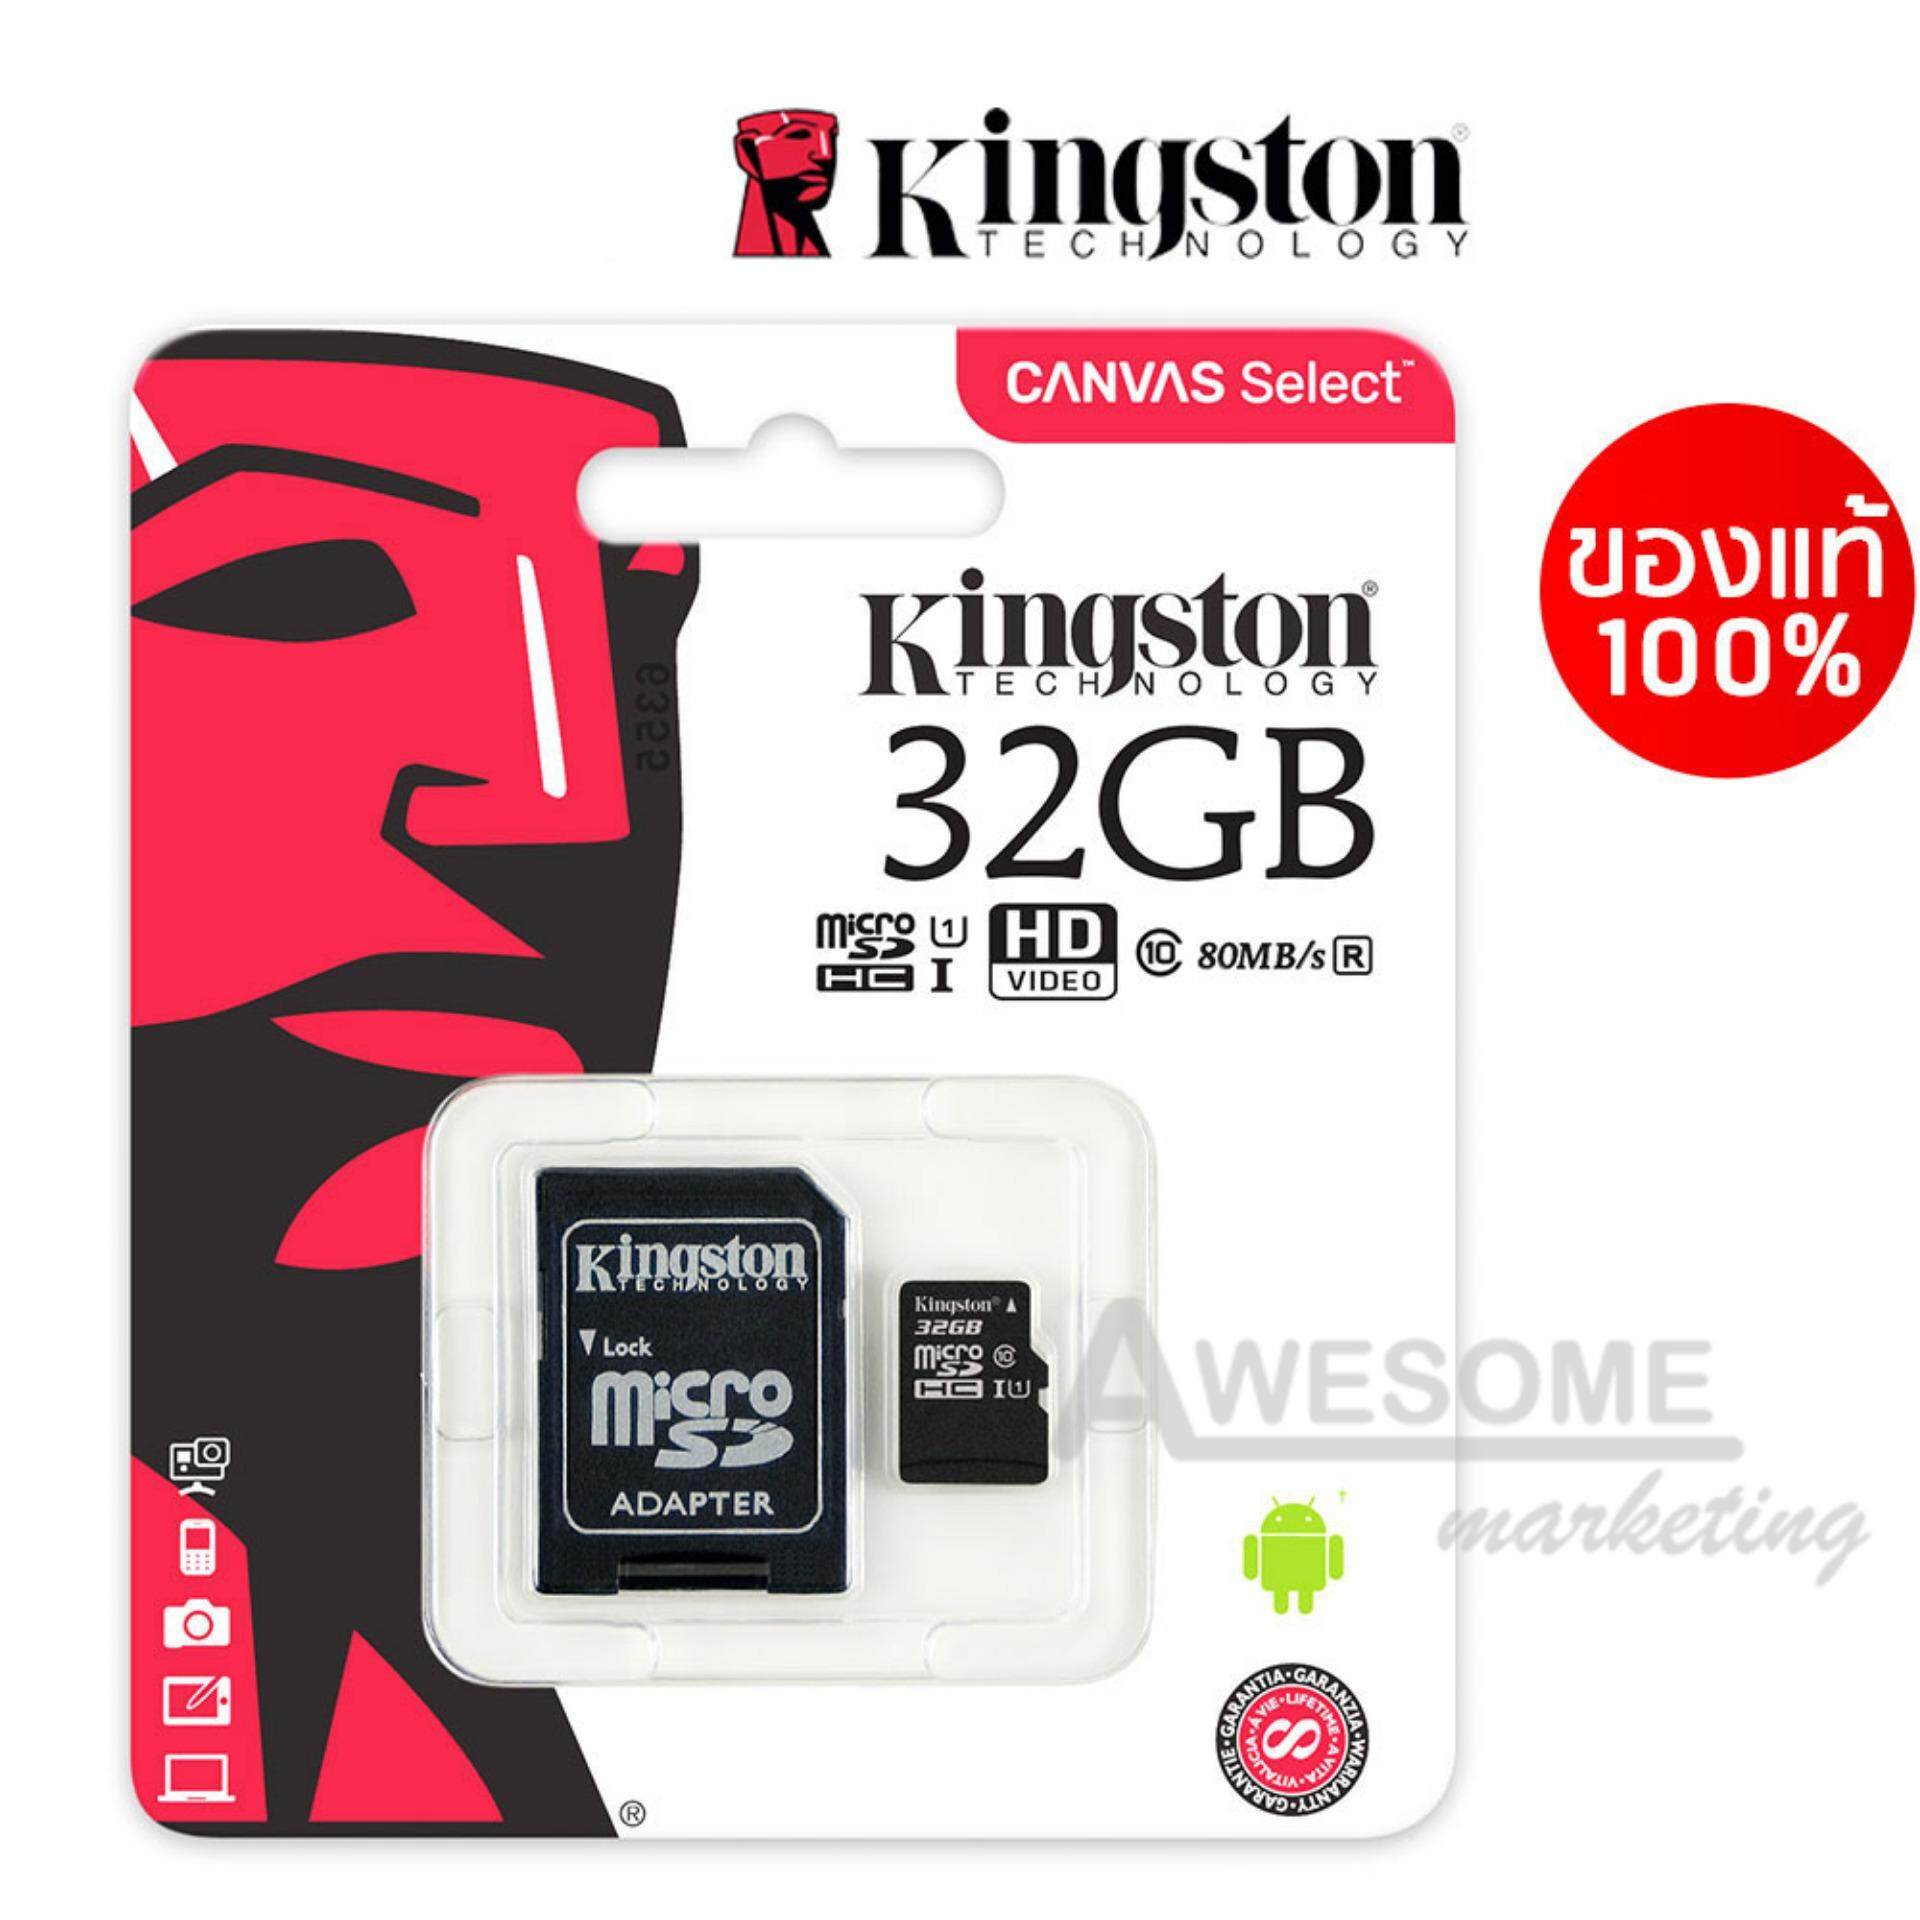 Kingston microSD Card Canvas Select ความจุ 32 GB Class 10 ความเร็ว 80/10MB/s (SDCS/32GBFR)